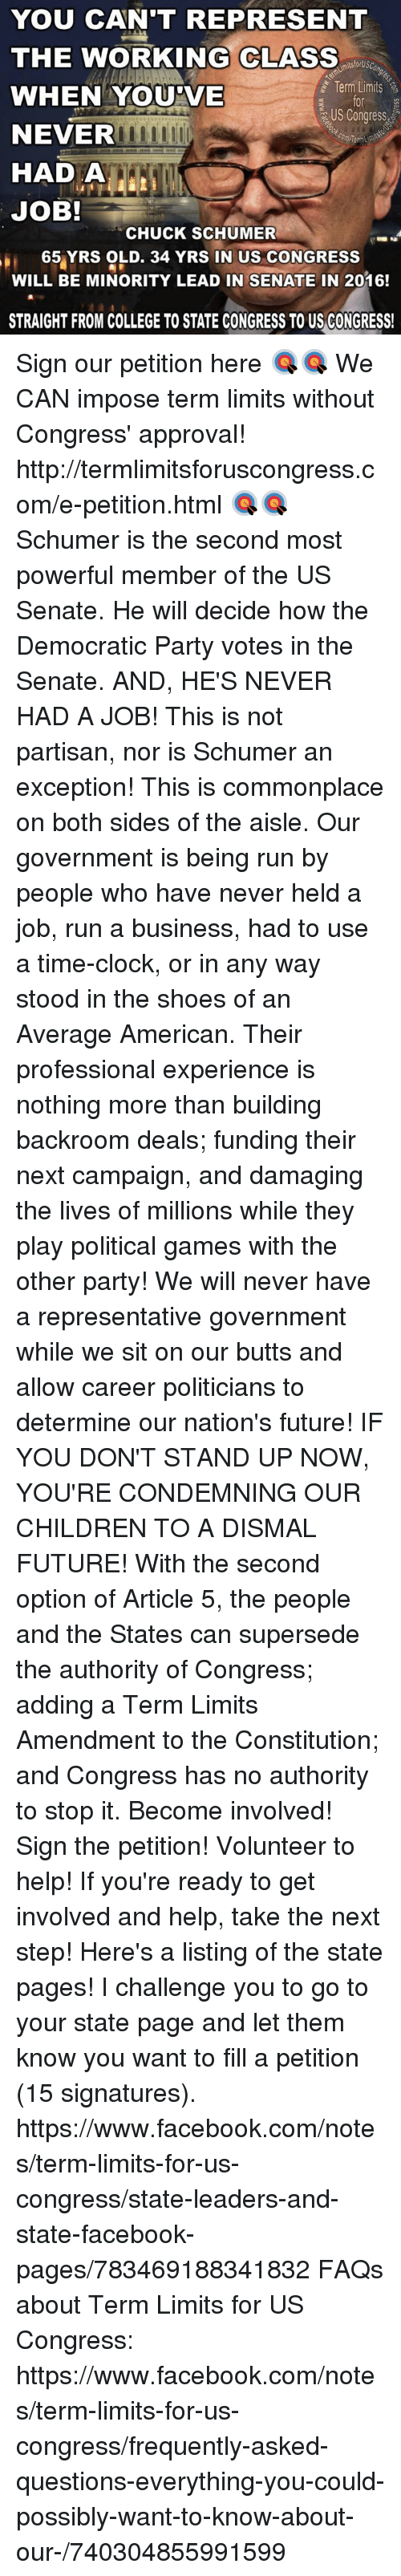 Memes, Democratic Party, and Any Ways: YOU CAN'T REPRESENT  THE WORKING CLASS  Term Limits  WHEN YOU VE  US Congress  NEVER  rmum  HAD A  JOB!  CHUCK SCHUMER  65 YRS OLD. 34 YRS IN US CONGRESS  WILL BE MINORITY LEAD IN SENATE IN 2016!  STRAIGHT FROM COLLEGE TO STATE CONGRESS TOUS CONGRESS! Sign our petition here 🎯🎯 We CAN impose term limits without Congress' approval! http://termlimitsforuscongress.com/e-petition.html 🎯🎯  Schumer is the second most powerful member of the US Senate.  He will decide how the Democratic Party votes in the Senate.  AND, HE'S NEVER HAD A JOB!  This is not partisan, nor is Schumer an exception!  This is commonplace on both sides of the aisle.  Our government is being run by people who have never held a job, run a business, had to use a time-clock, or in any way stood in the shoes of an Average American.  Their professional experience is nothing more than building backroom deals; funding their next campaign, and damaging the lives of millions while they play political games with the other party!  We will never have a representative government while we sit on our butts and allow career politicians to determine our nation's future!  IF YOU DON'T STAND UP NOW, YOU'RE CONDEMNING OUR CHILDREN TO A DISMAL FUTURE!  With the second option of Article 5, the people and the States can supersede the authority of Congress; adding a Term Limits Amendment to the Constitution; and Congress has no authority to stop it. Become involved! Sign the petition! Volunteer to help!  If you're ready to get involved and help, take the next step! Here's a listing of the state pages! I challenge you to go to your state page and let them know you want to fill a petition (15 signatures). https://www.facebook.com/notes/term-limits-for-us-congress/state-leaders-and-state-facebook-pages/783469188341832 FAQs about Term Limits for US Congress: https://www.facebook.com/notes/term-limits-for-us-congress/frequently-asked-questions-everything-you-could-possibly-want-to-know-about-